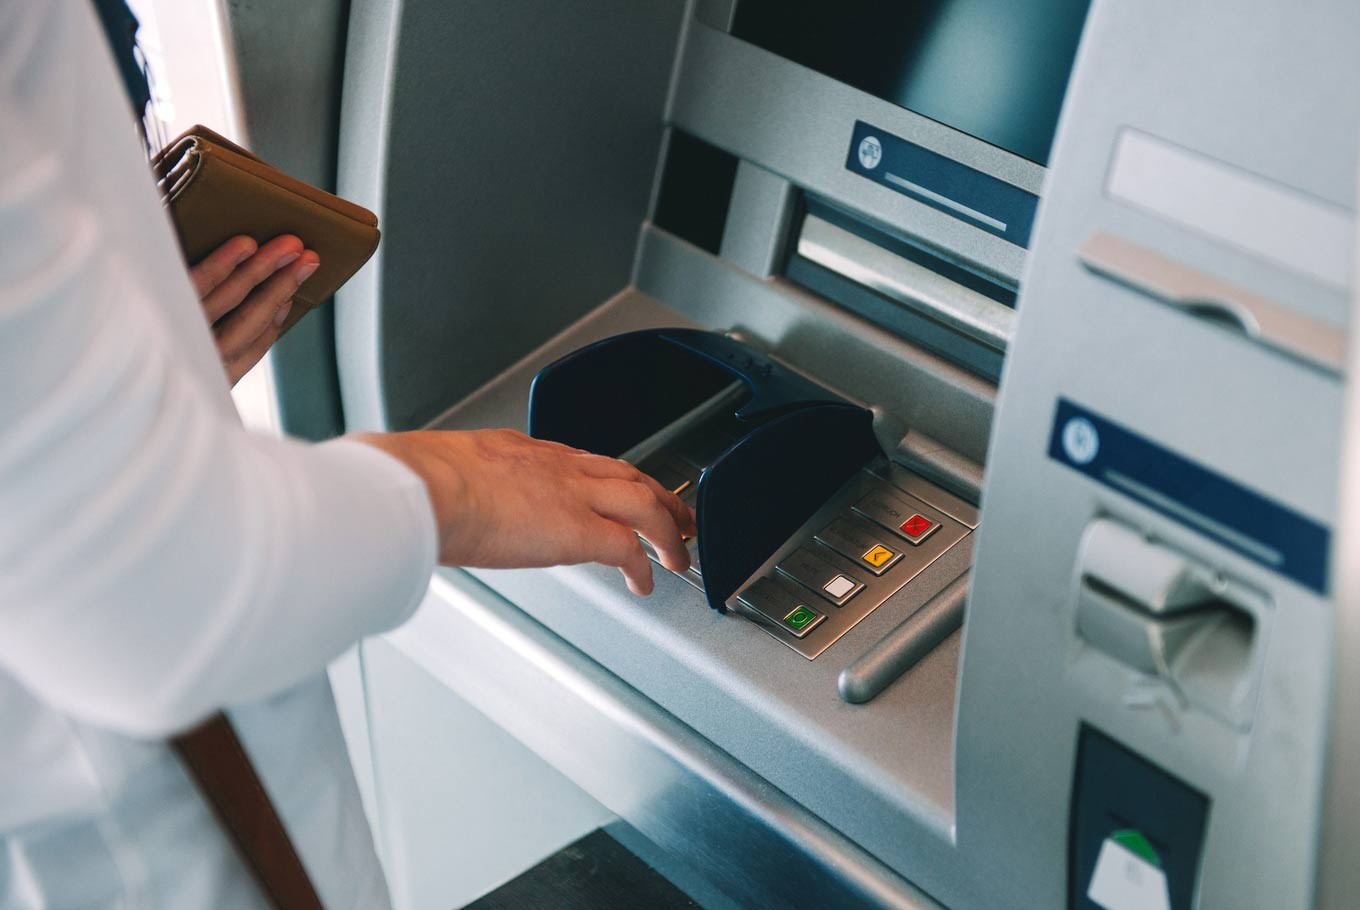 Satpol PP officers questioned for withdrawing up to US$2M at ATM while balances were unchanged